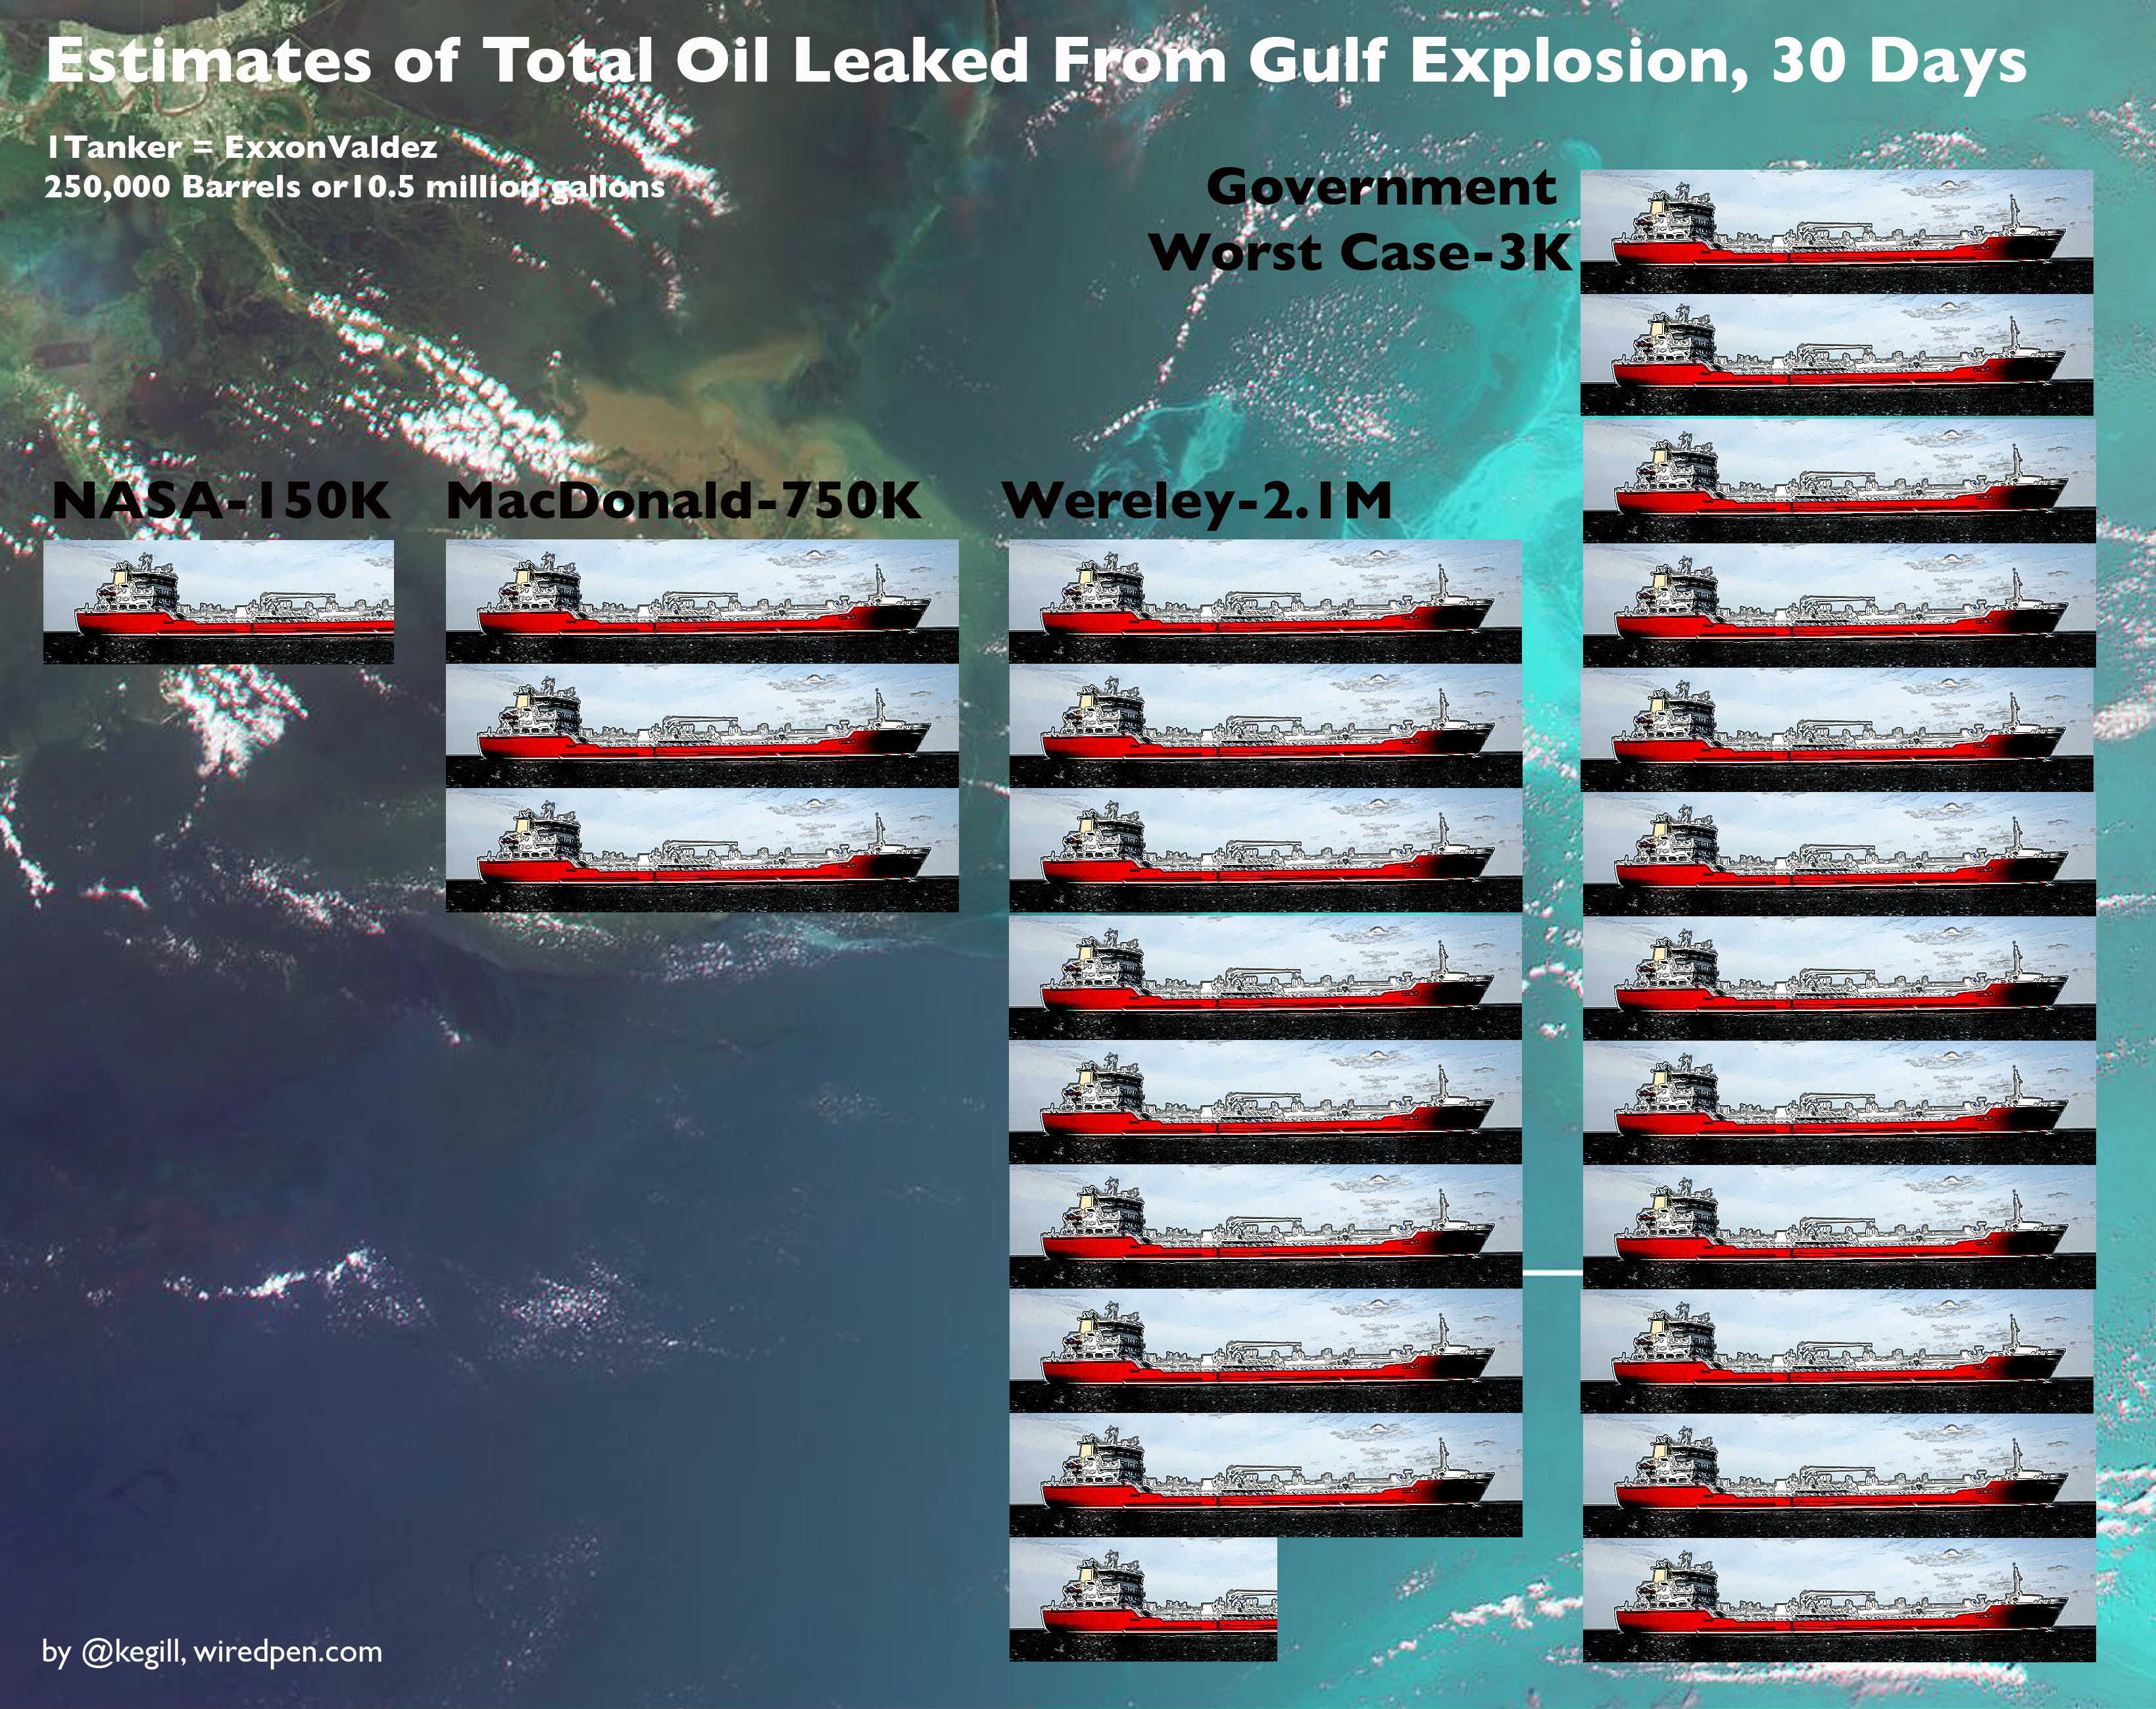 Estimates of Total Oil Leaked From Gulf Explosion, 30 Days